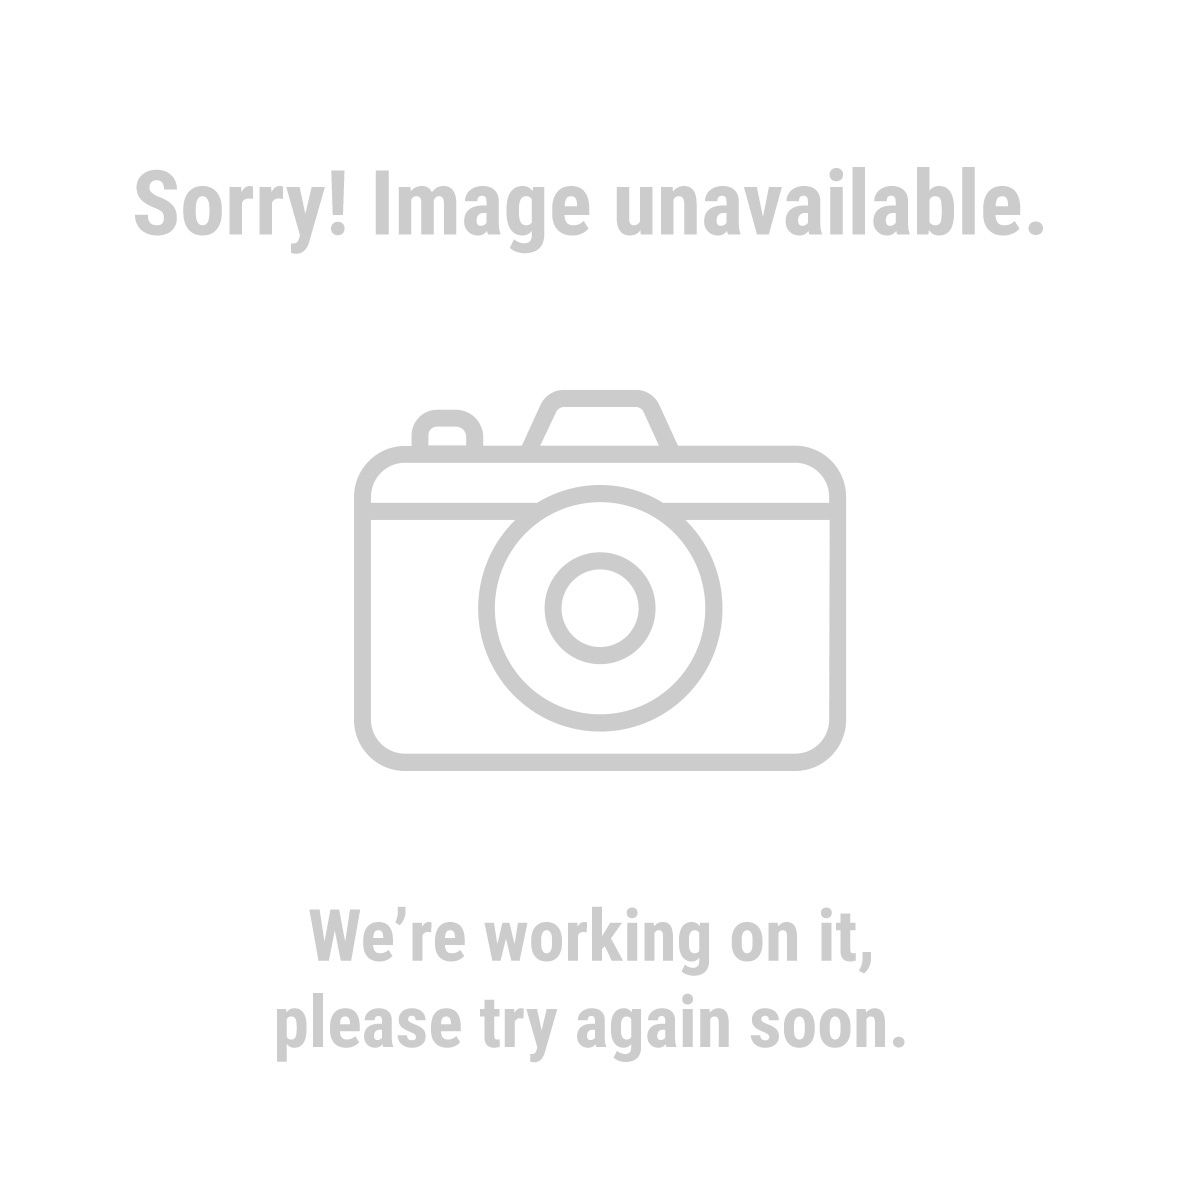 "Haul Master Automotive 69616 72"" x 96"" Full Size Pickup Cargo Net"